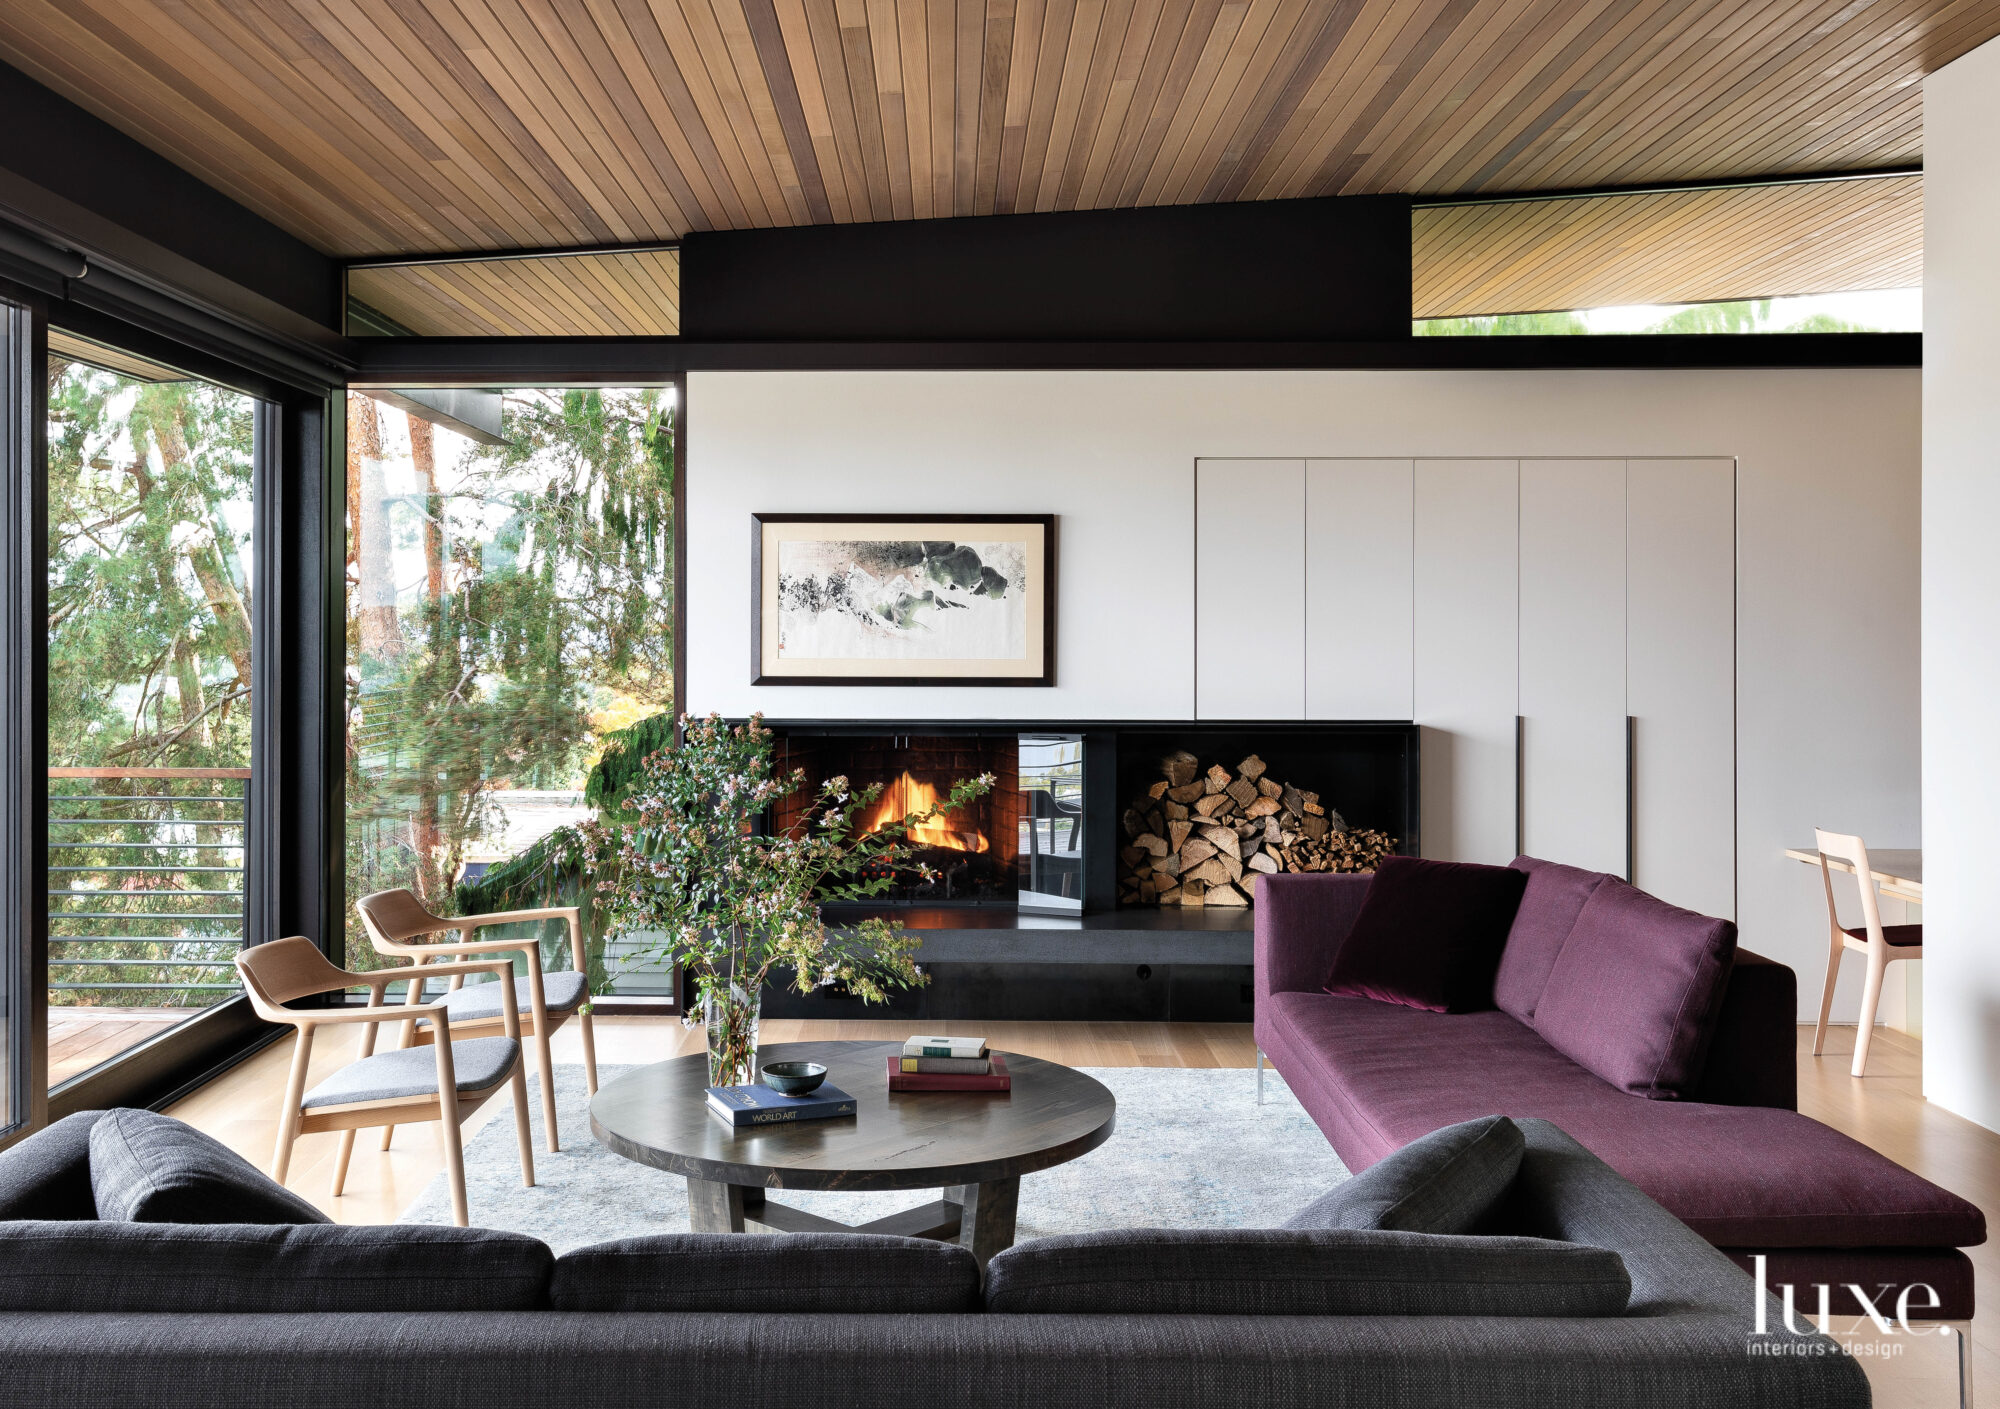 Functionality And Picturesque Surroundings Set The Stage For A Pacific Northwest Home Luxe Interiors Design